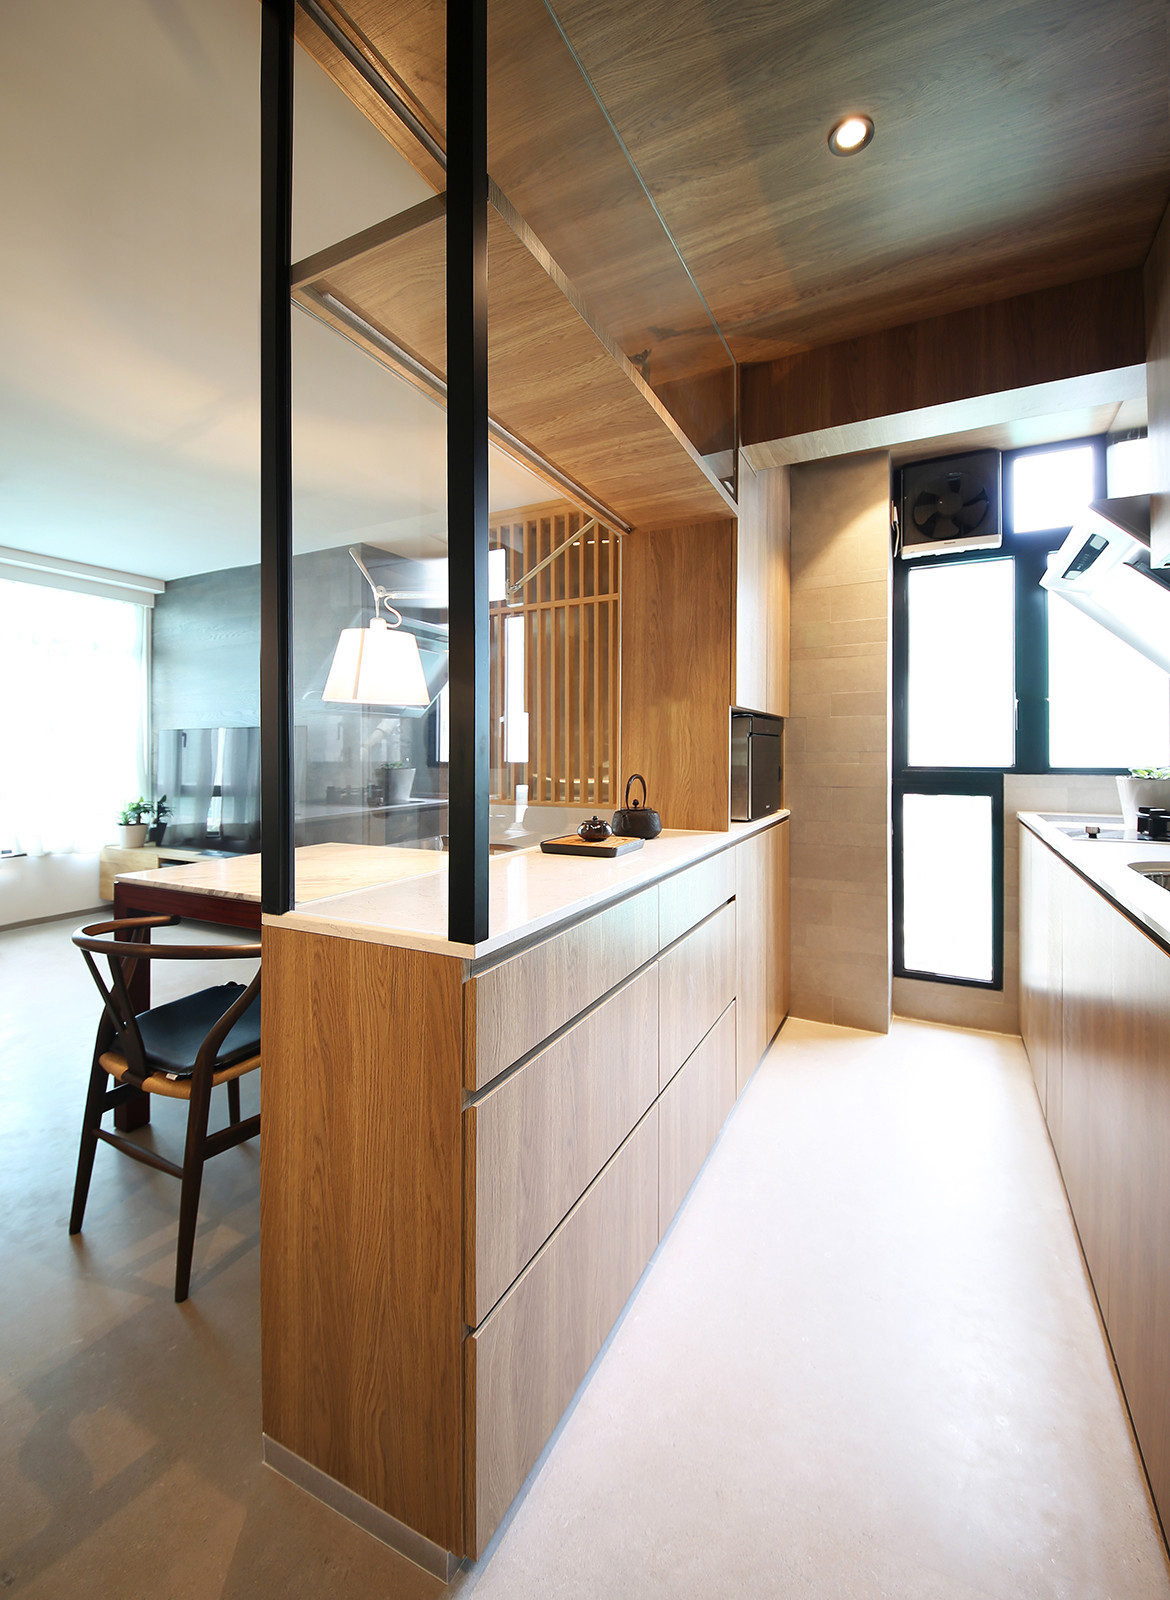 Taikoo Shing Apartment Studio Adjective kitchen bench